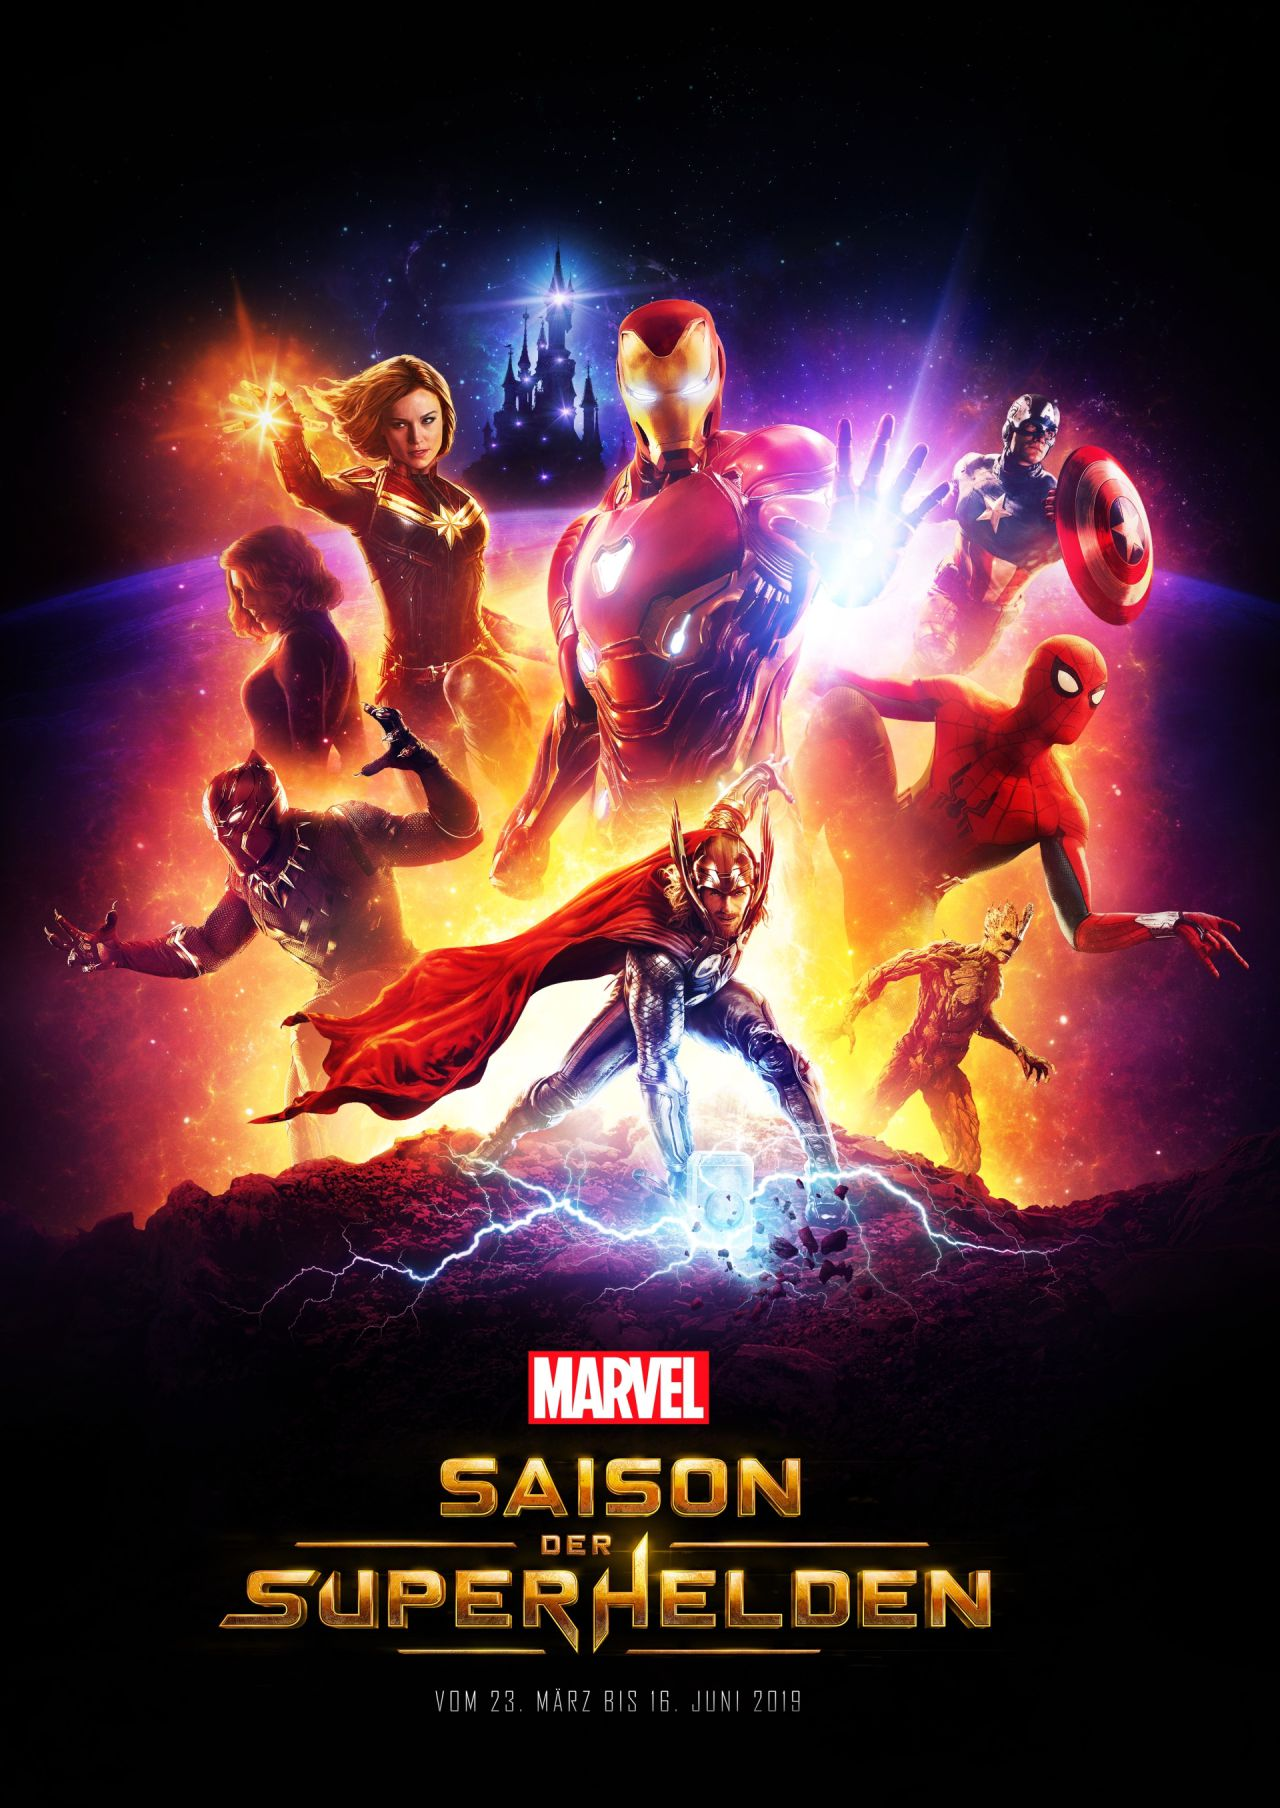 MARVEL Saison der Superhelden